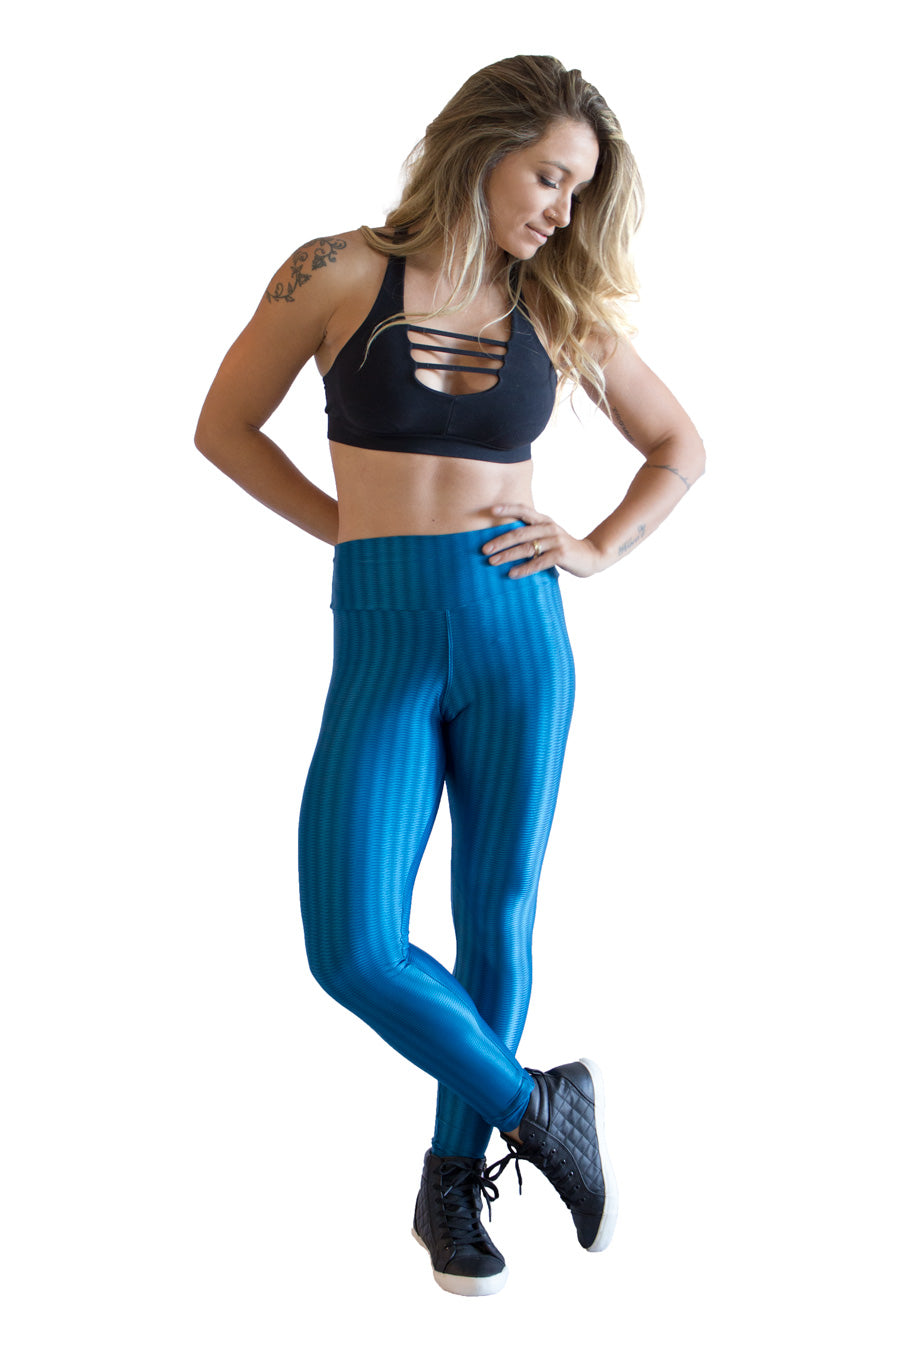 Azul do Mar Cirre Leggings - women yoga clothes beBrazil